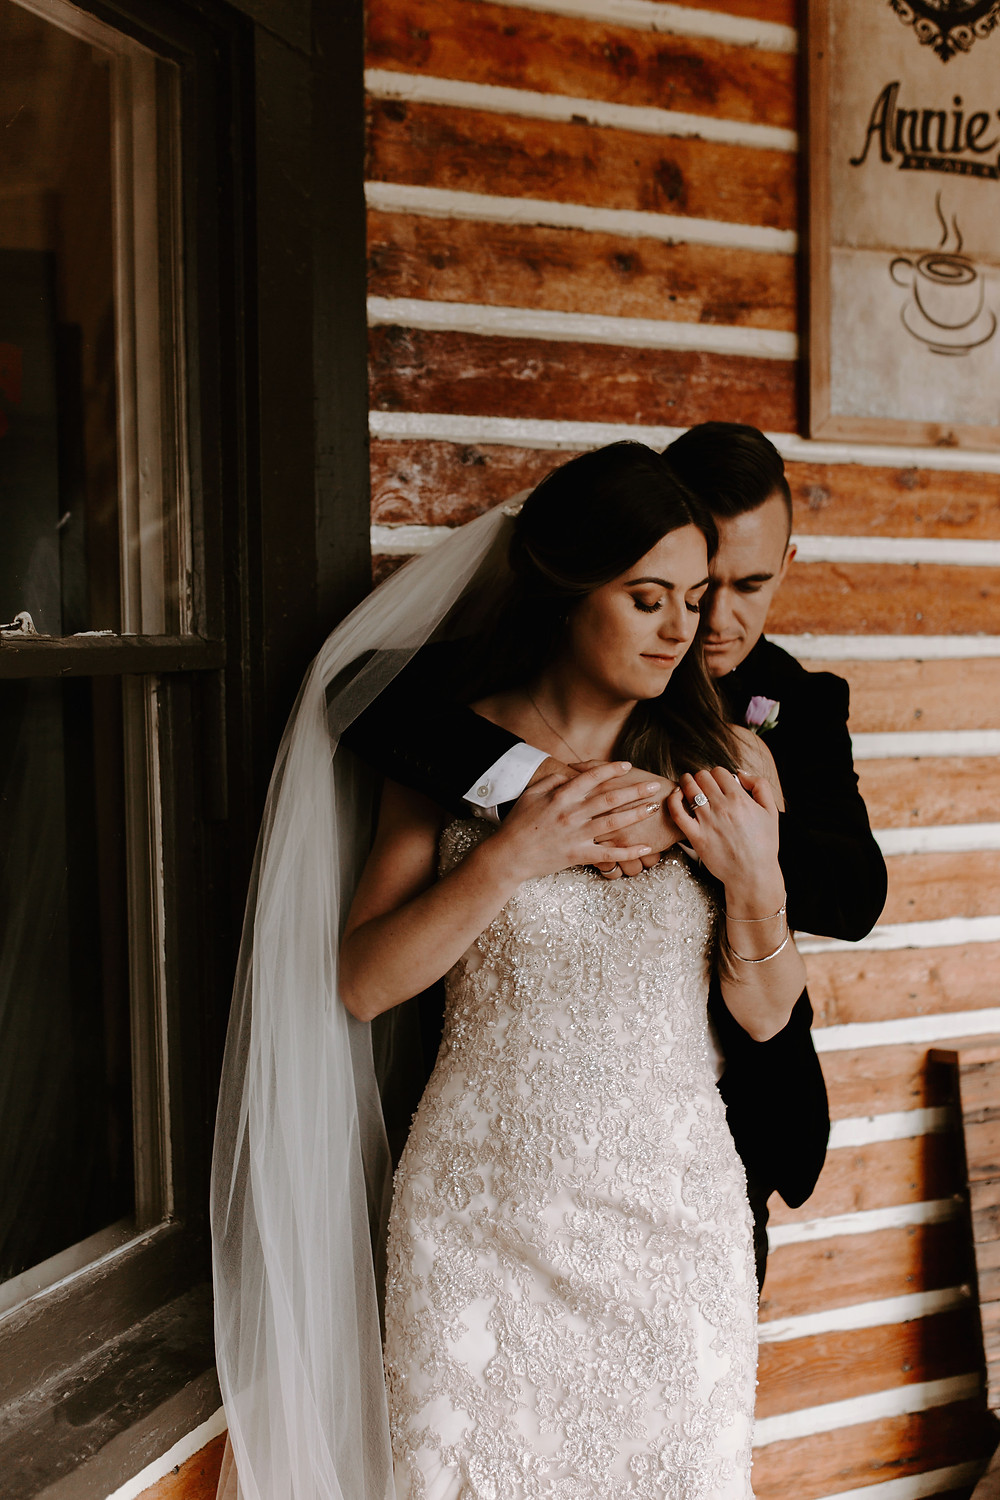 annies cafe bride and groom meadow muse wedding